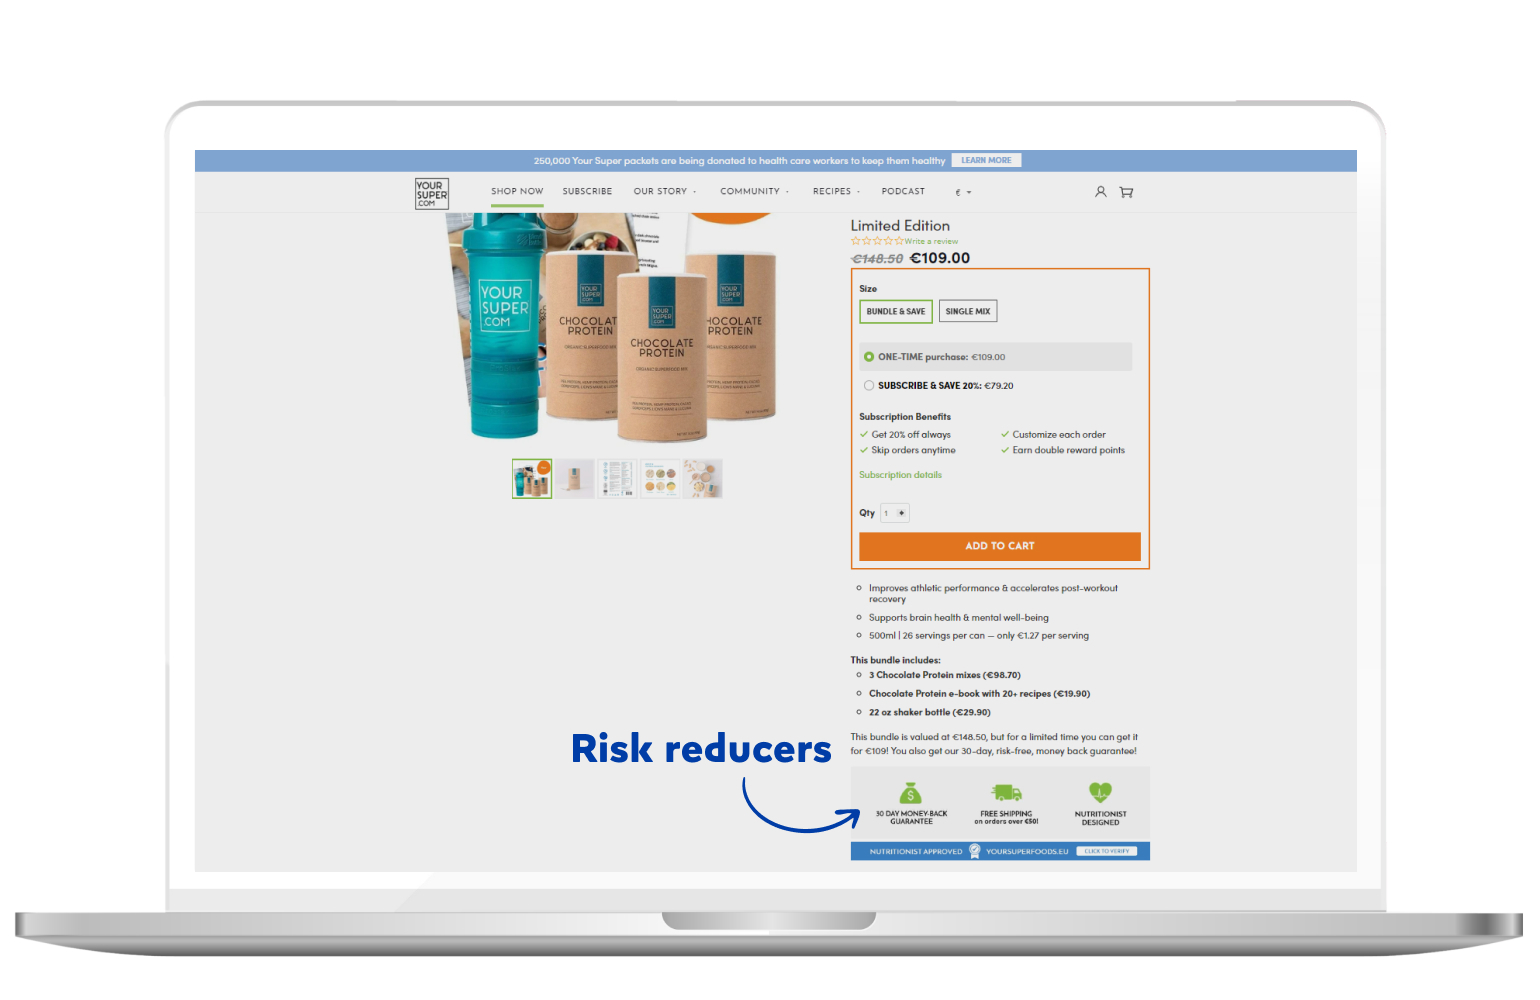 Risk reducers in eCommerce